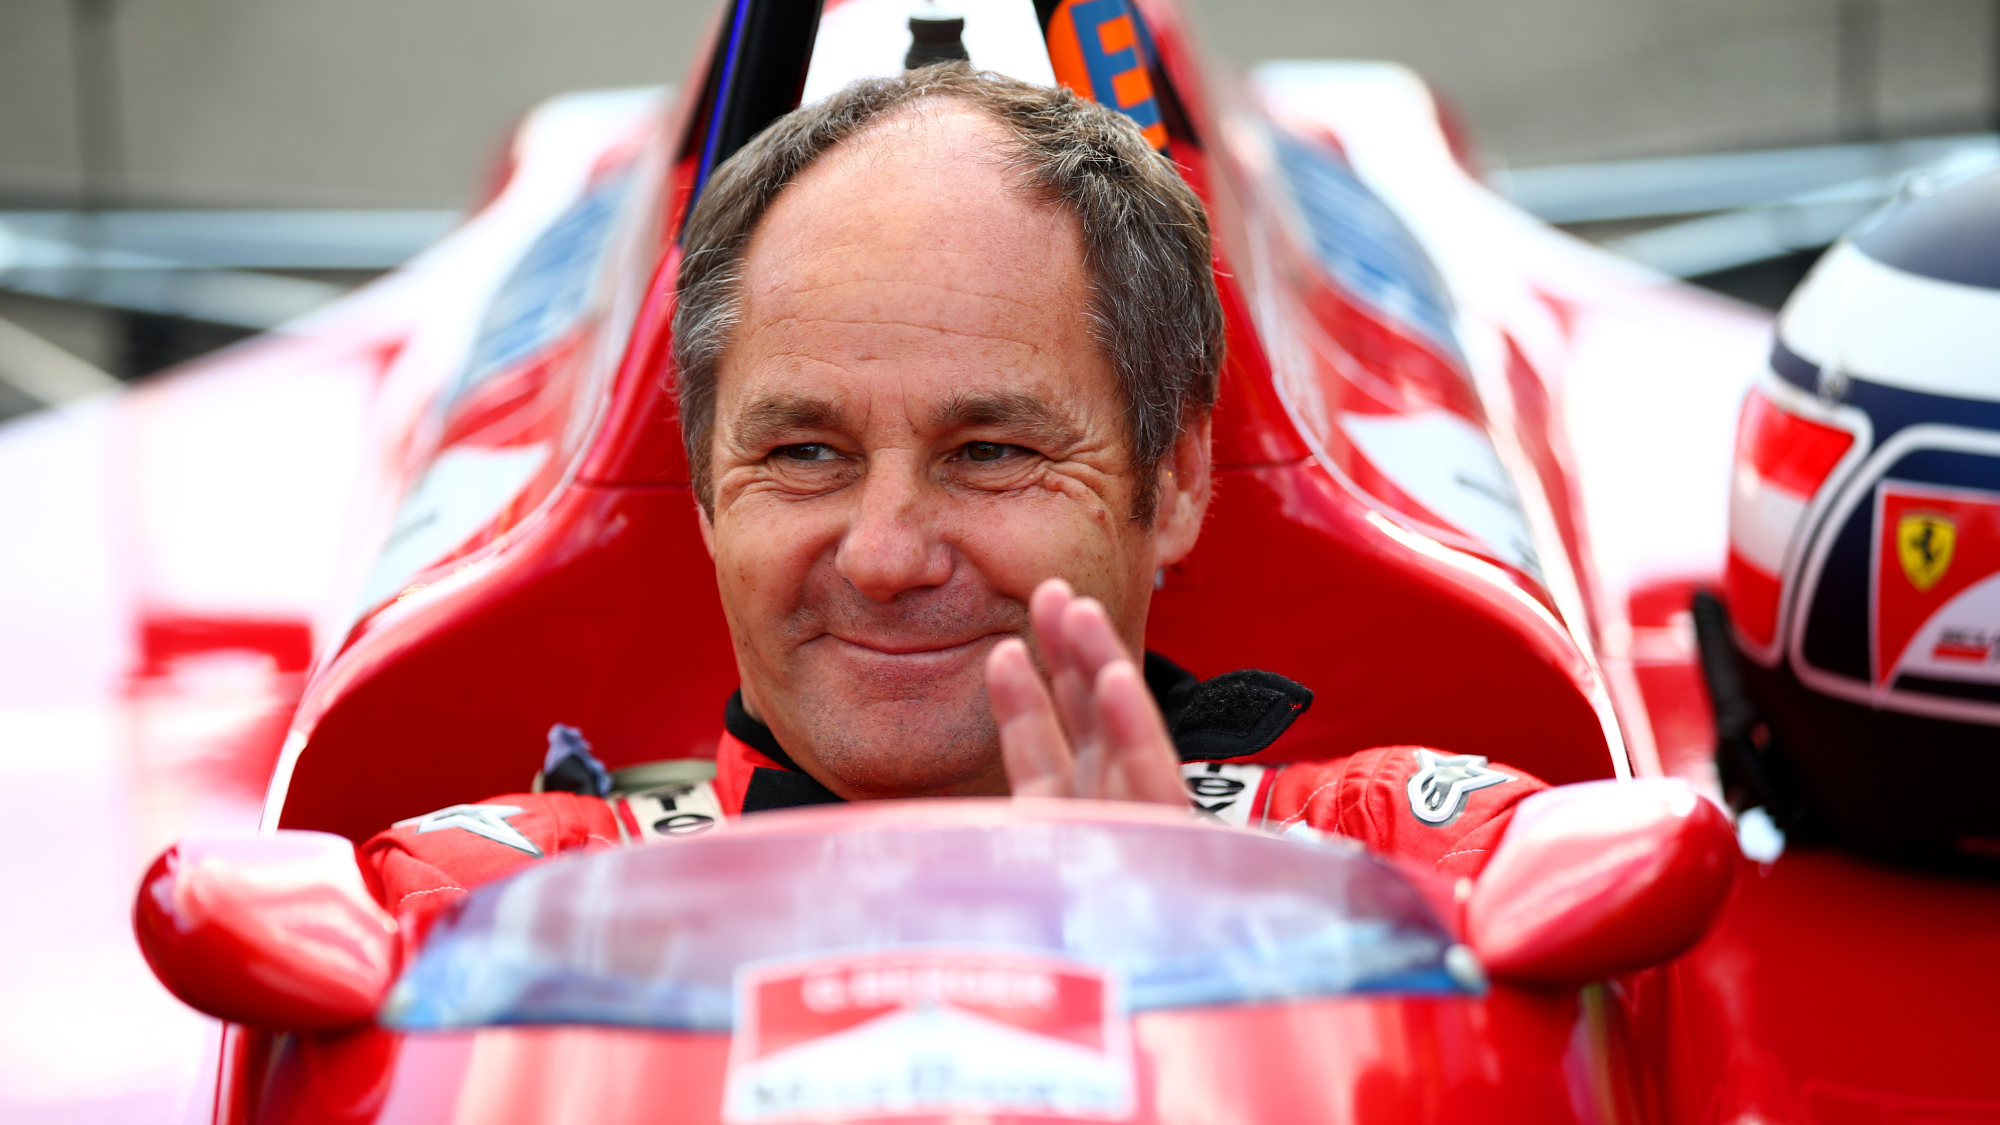 Submit your questions to Gerhard Berger